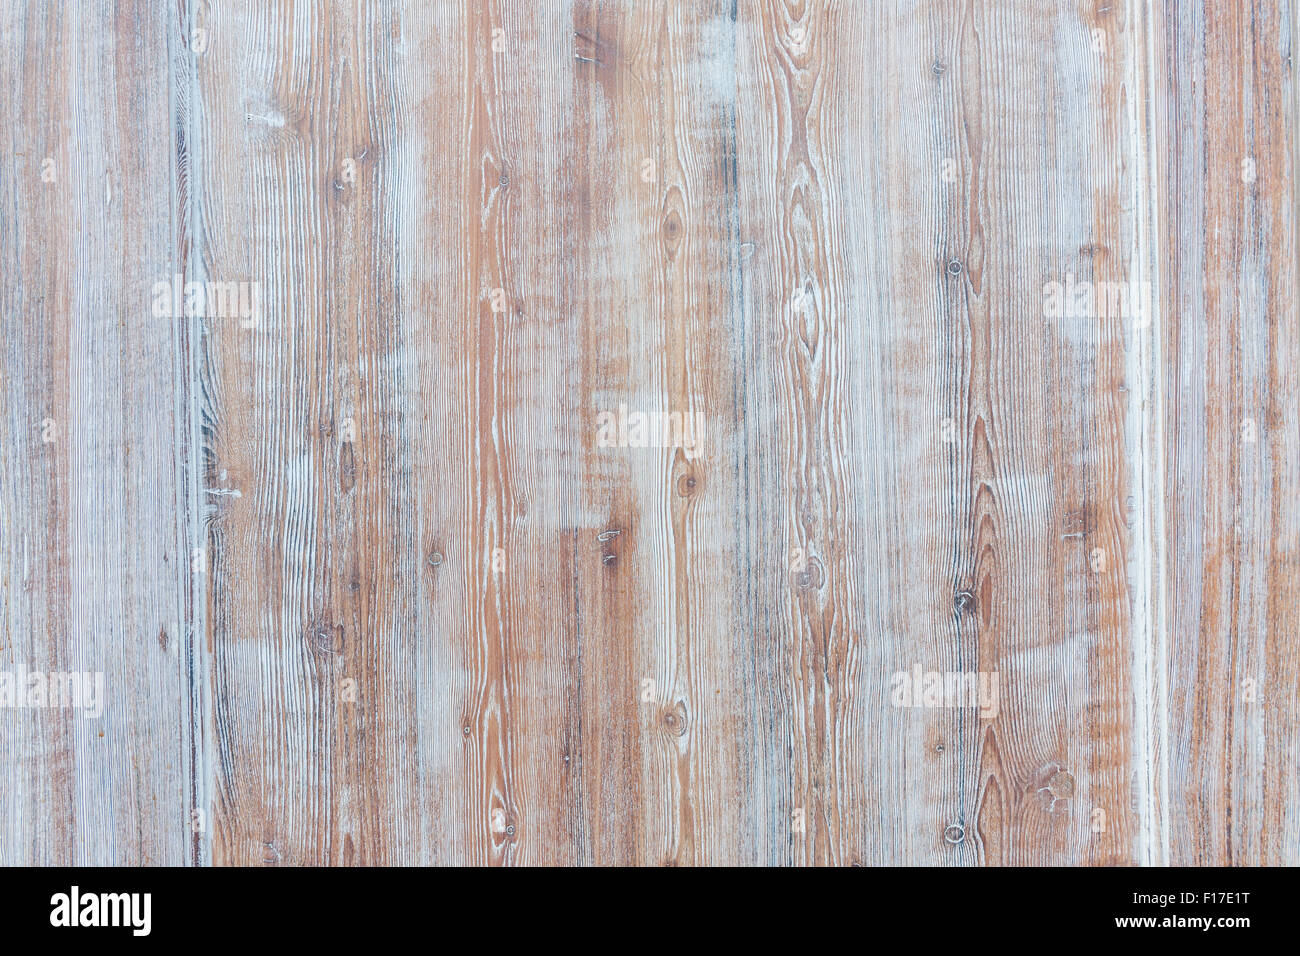 Aged wooden background of weathered distressed rustic